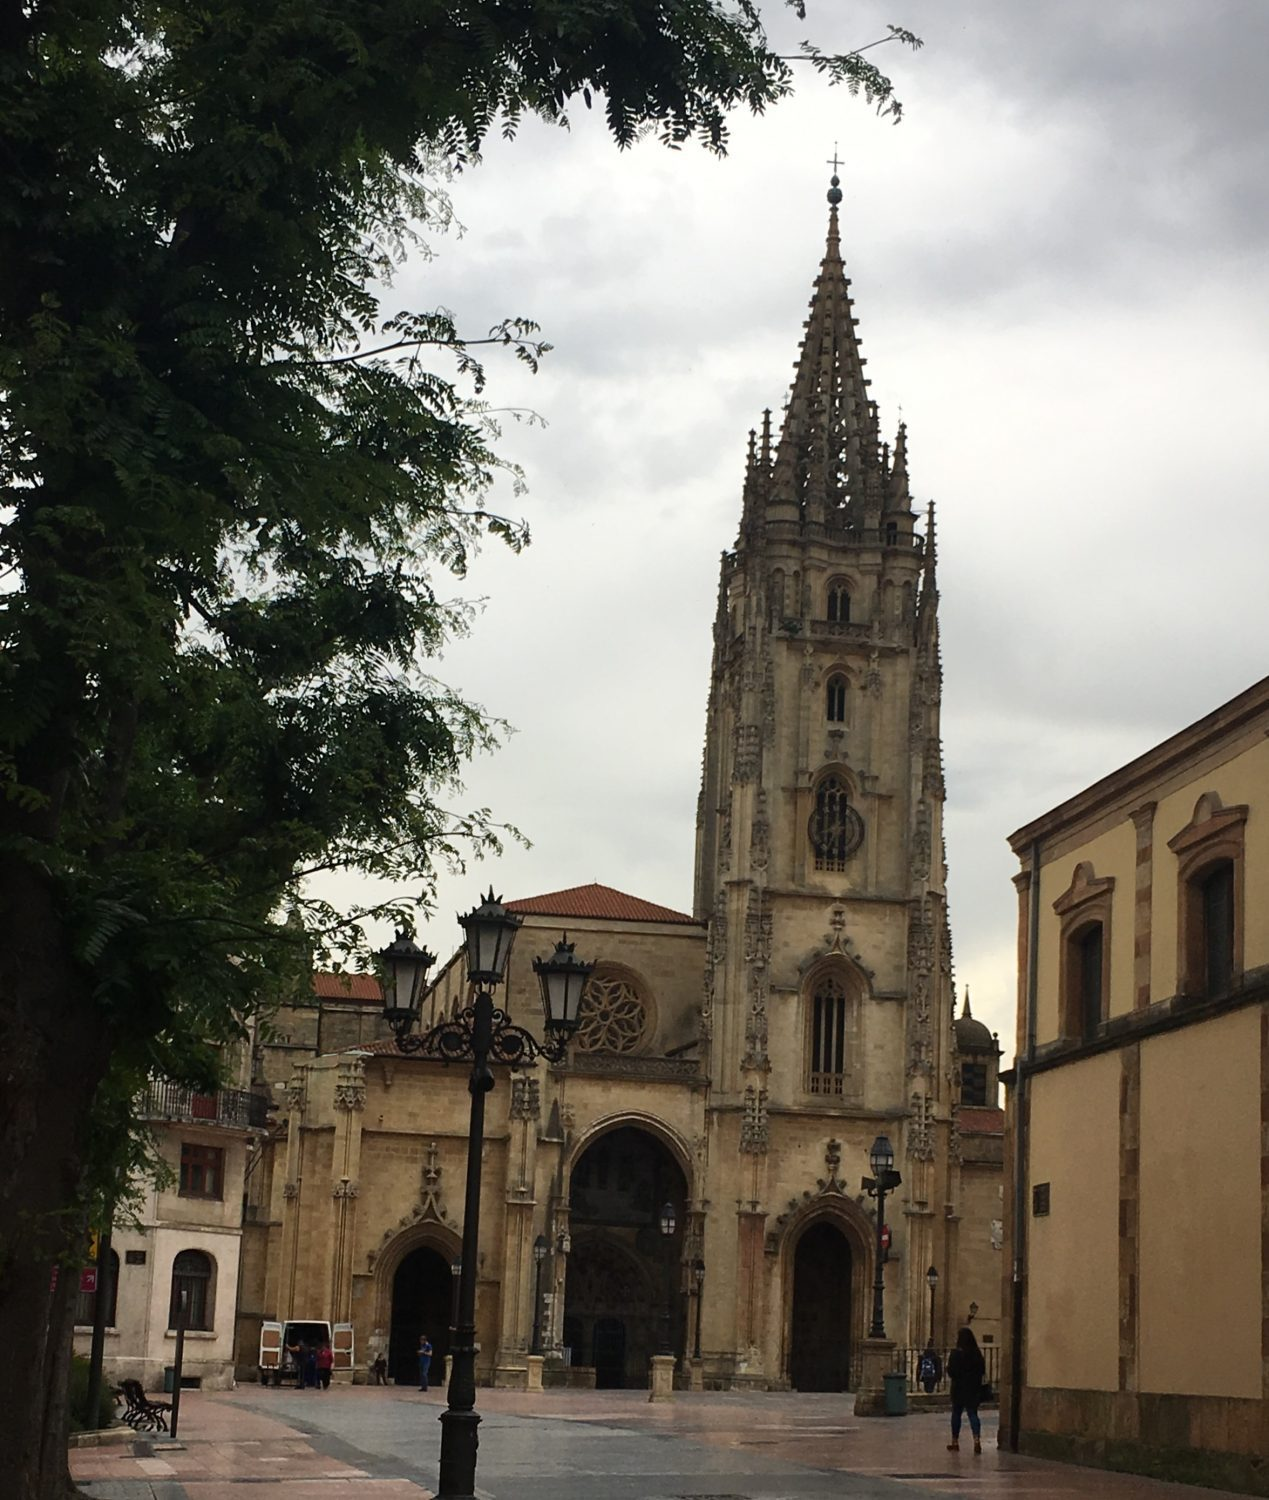 The cathedral in Oveido is the starting point of Camino Primitivo